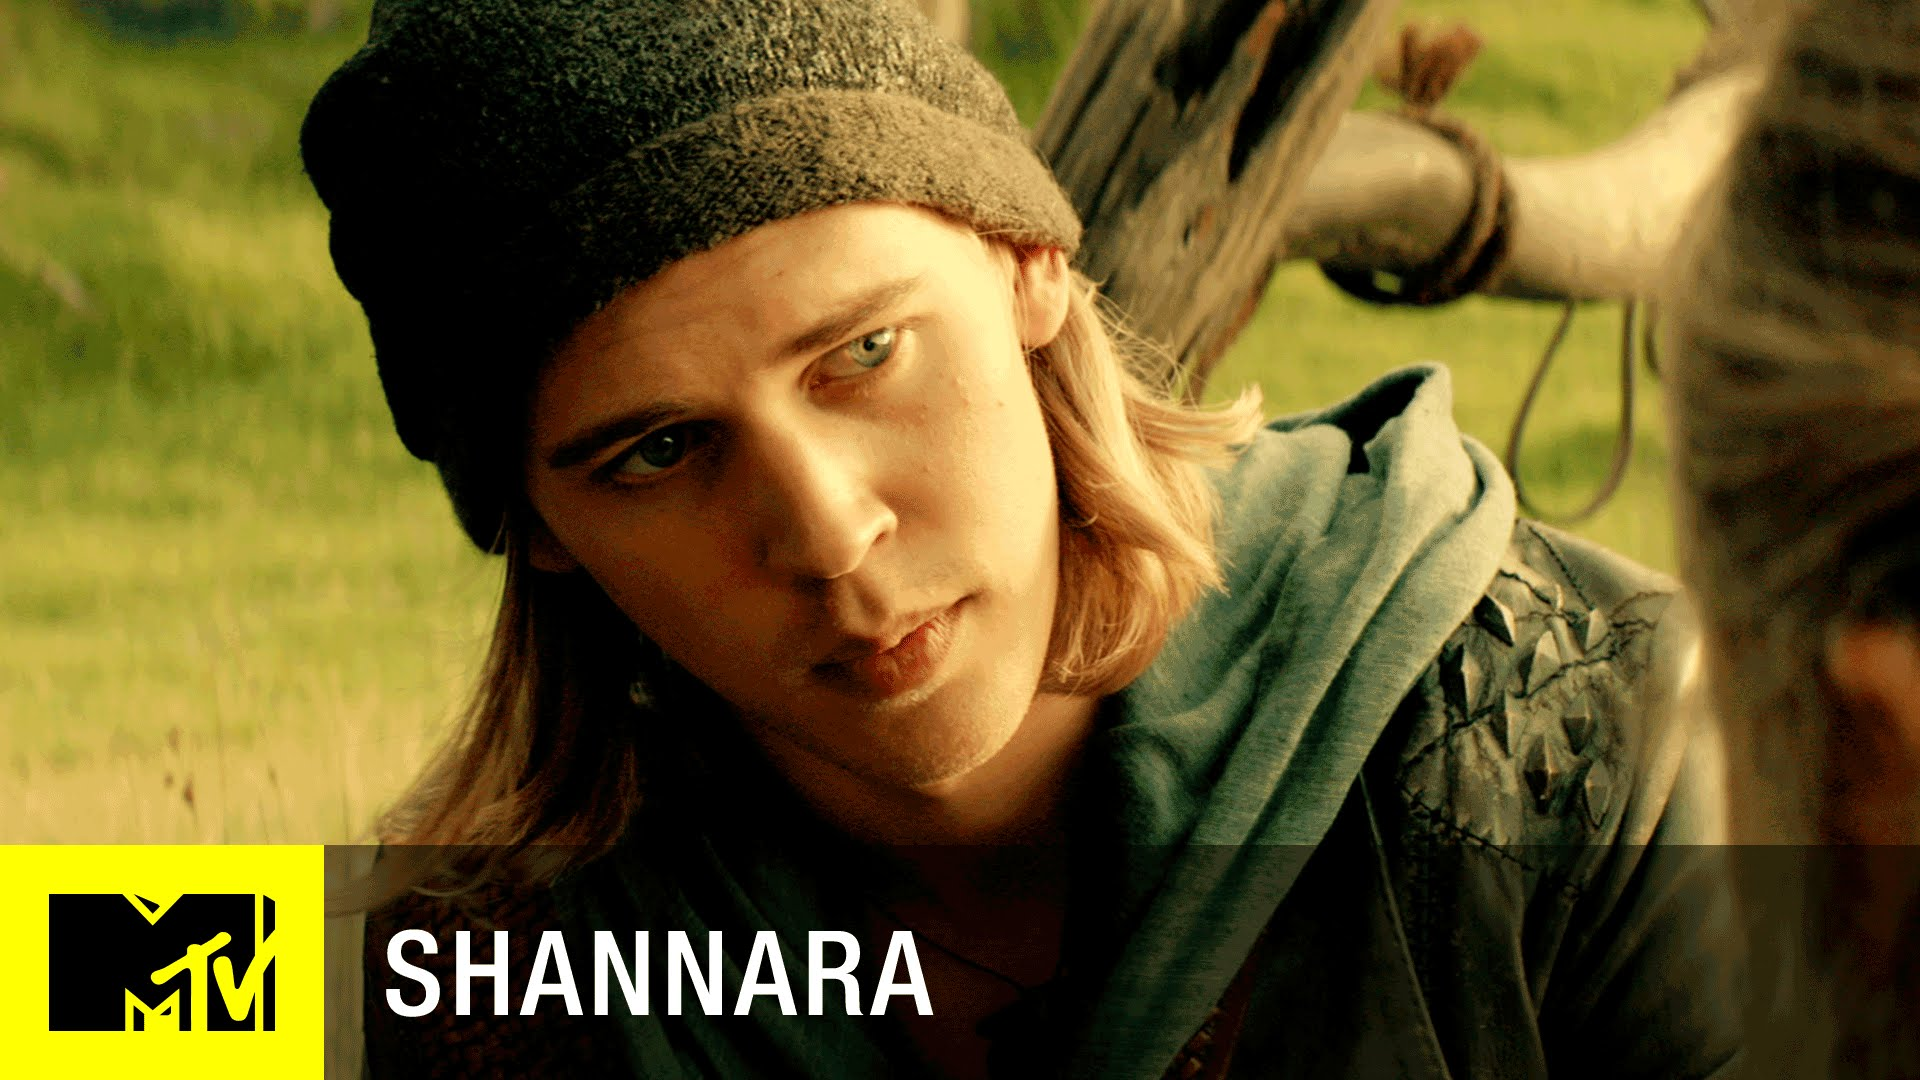 THE SHANNARA CHRONICLES – Trailer vom NYCC